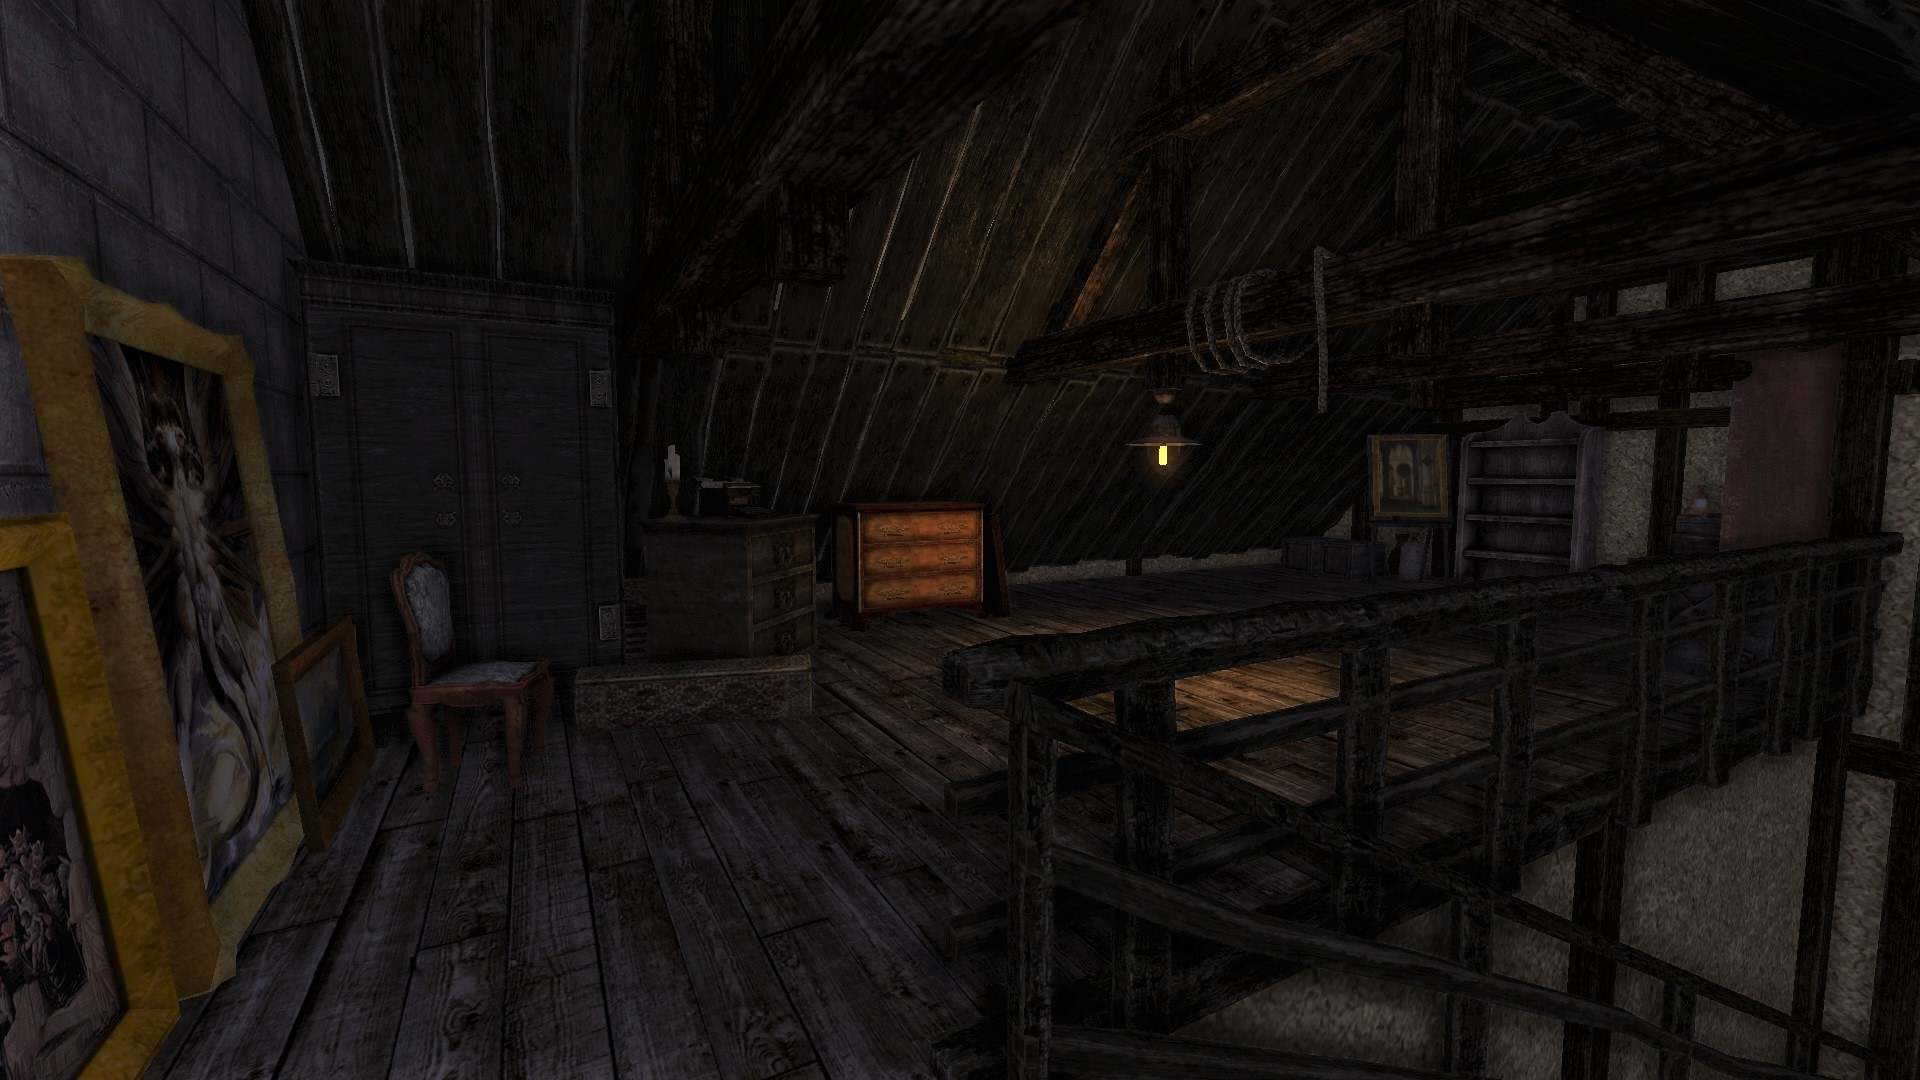 Attic Image Amnesia Black Keys Mod For Amnesia The